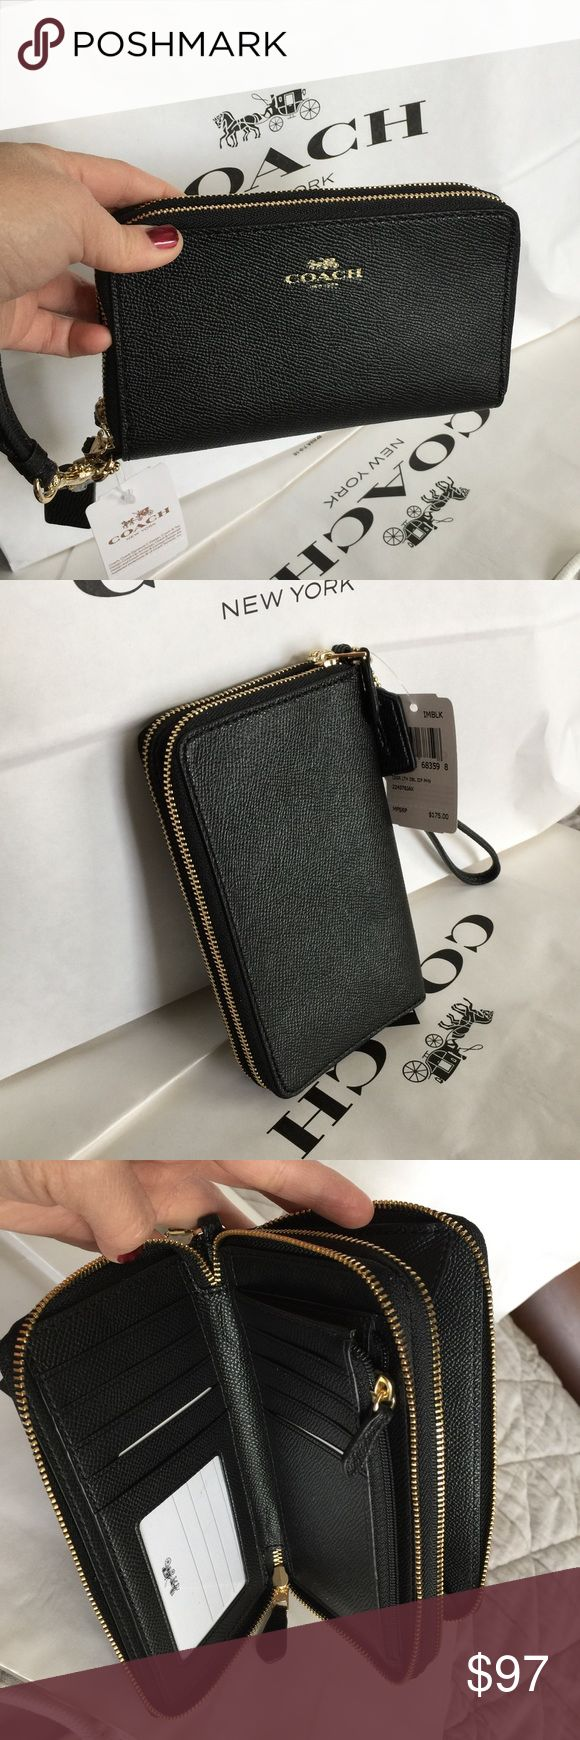 🎄Coach Wallet🎄 100% Authentic Coach Wallet, brand new!😍😍😍color Black🎄🎄🎄 Coach Bags Wallets